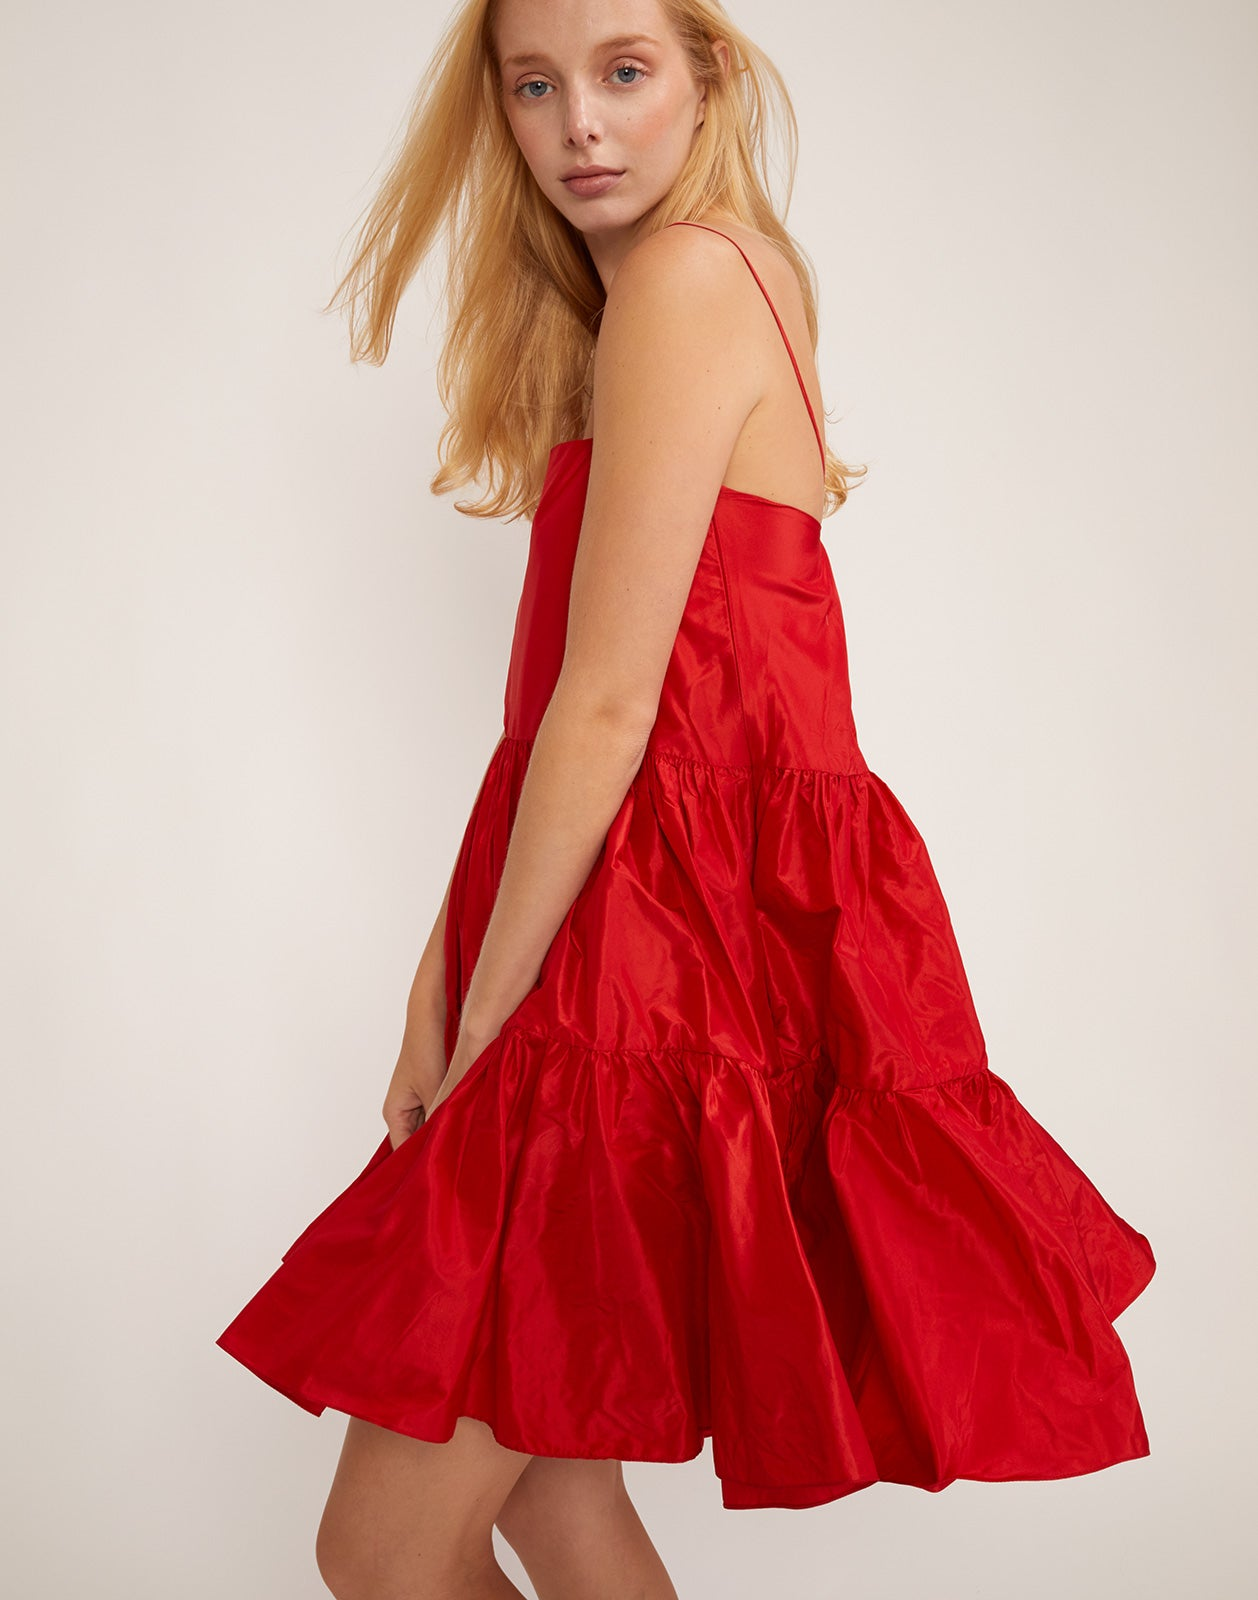 Side view of the Cherry taffeta tiered party dress.